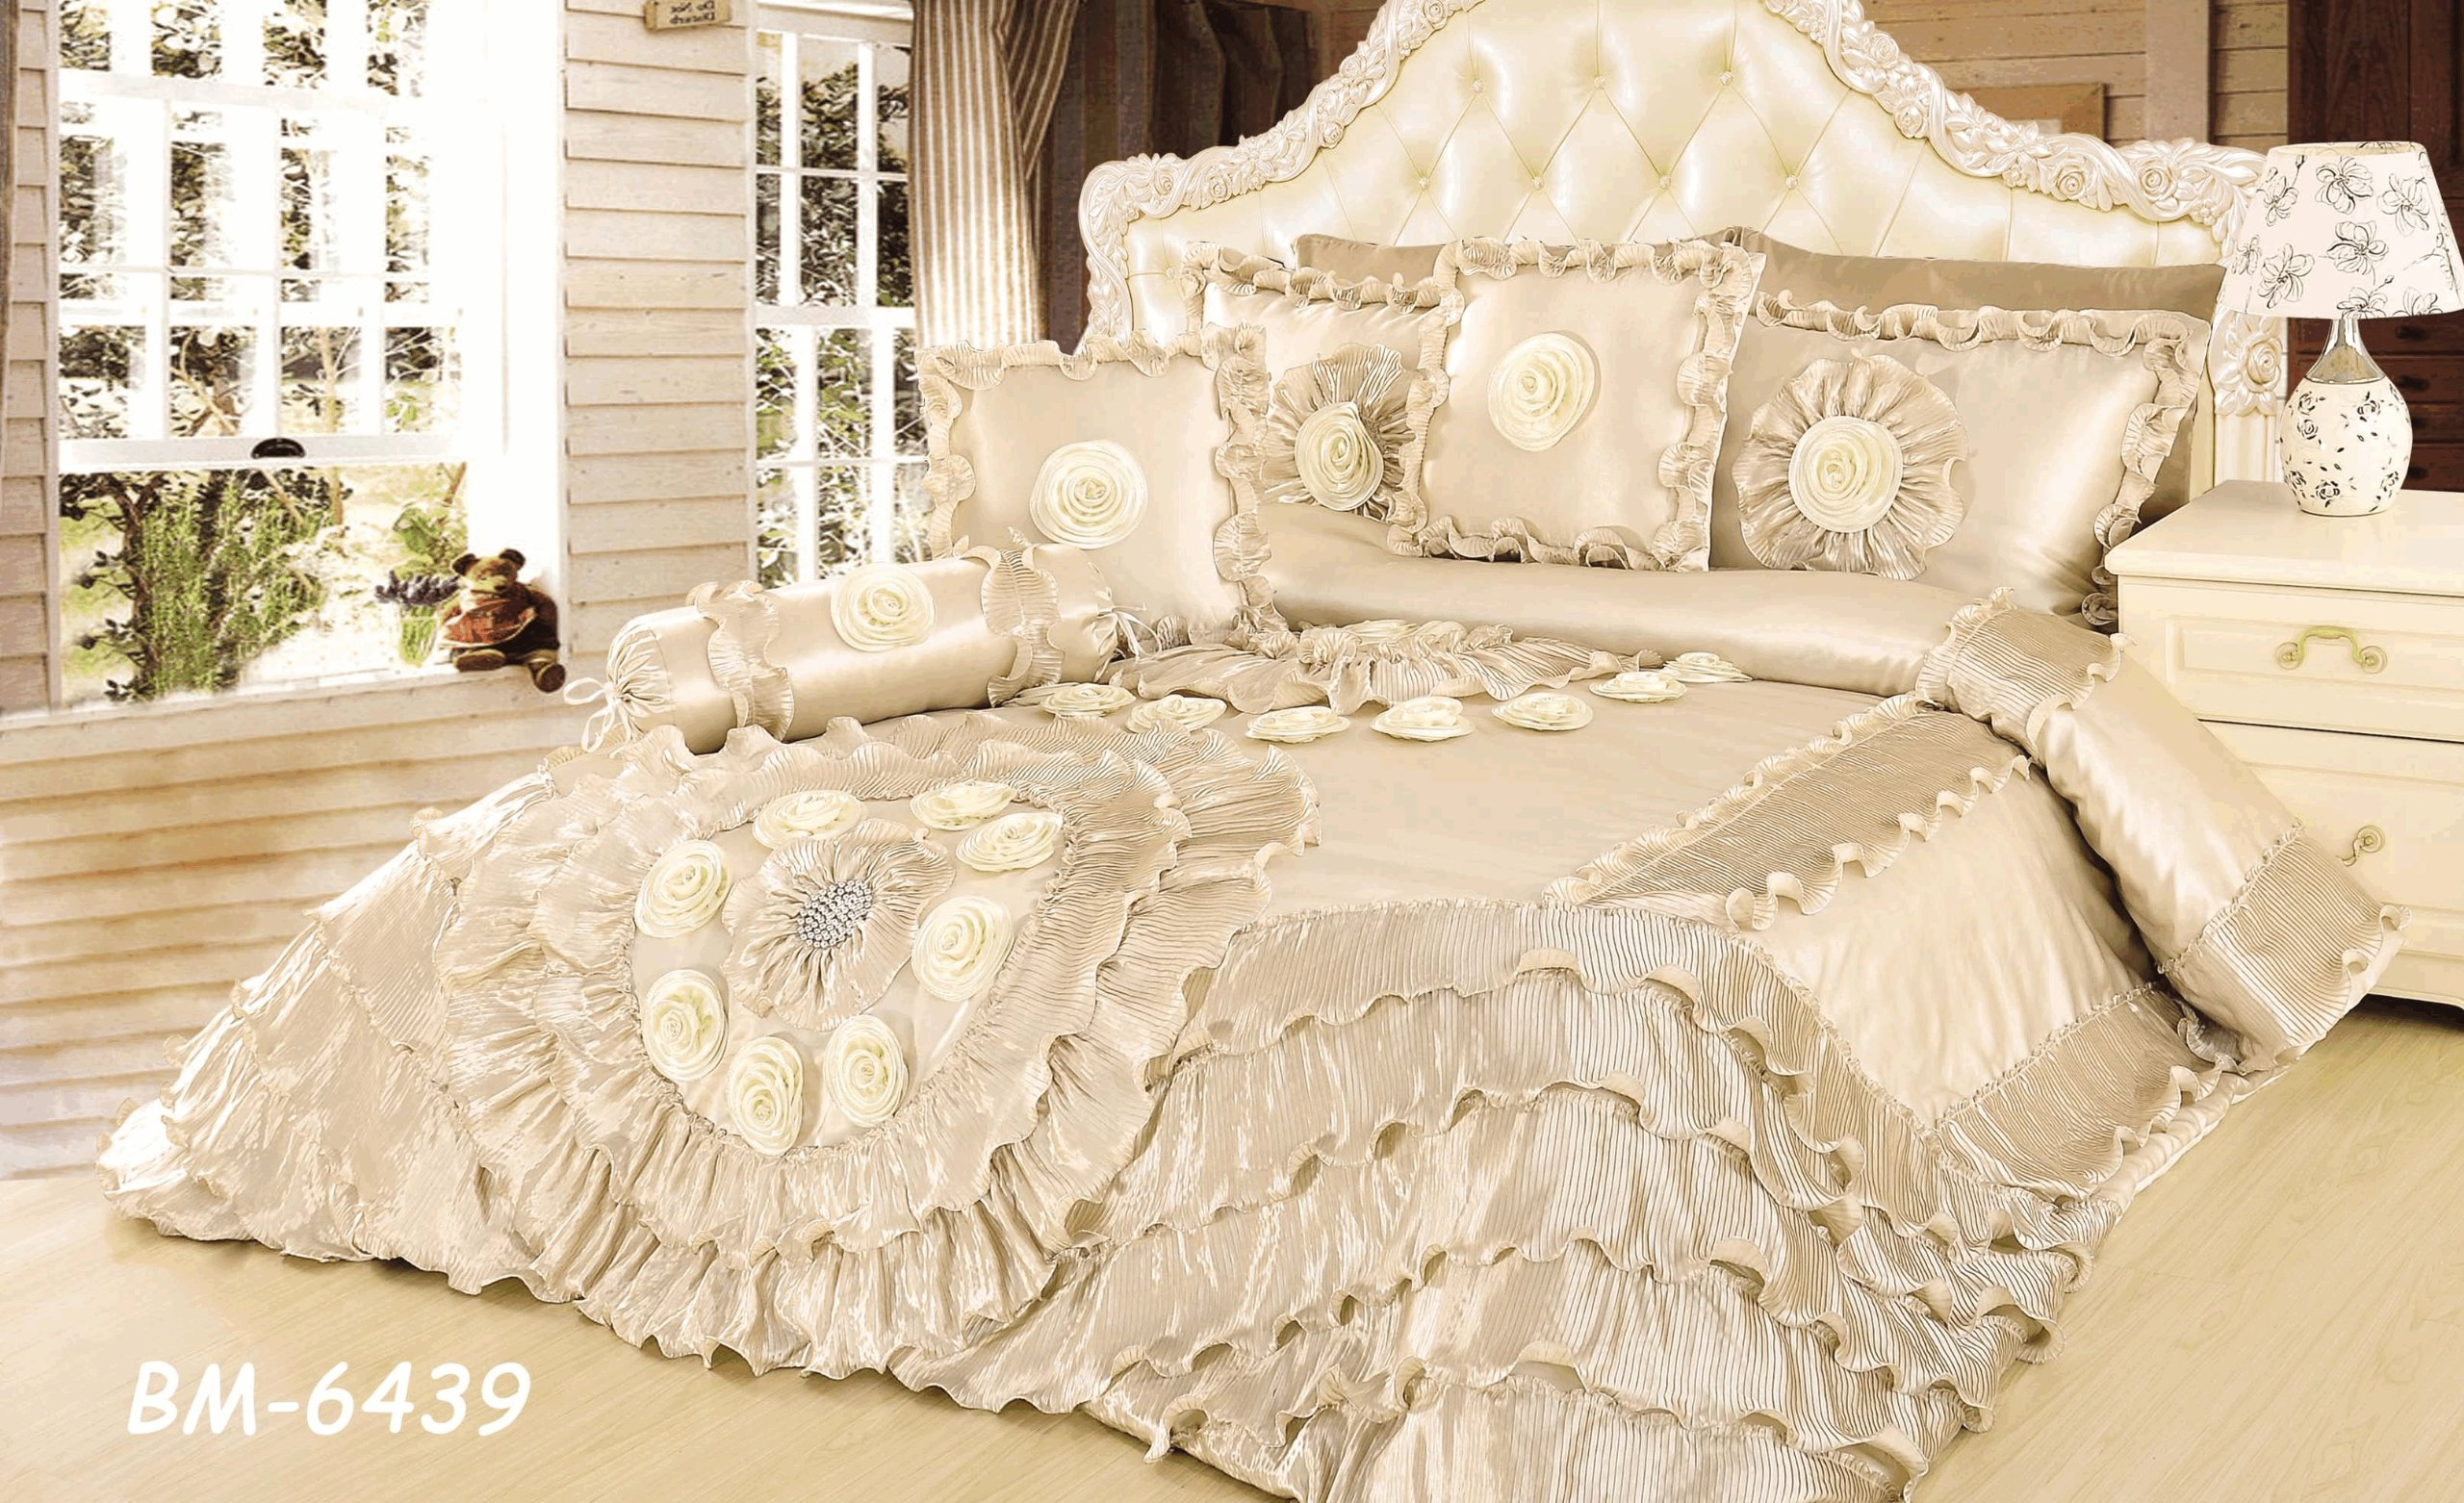 Tache 6 Piece Royal Wedding Chamber in Cream Faux Satin Sateen Comforter Set, California King by Tache Home Fashion